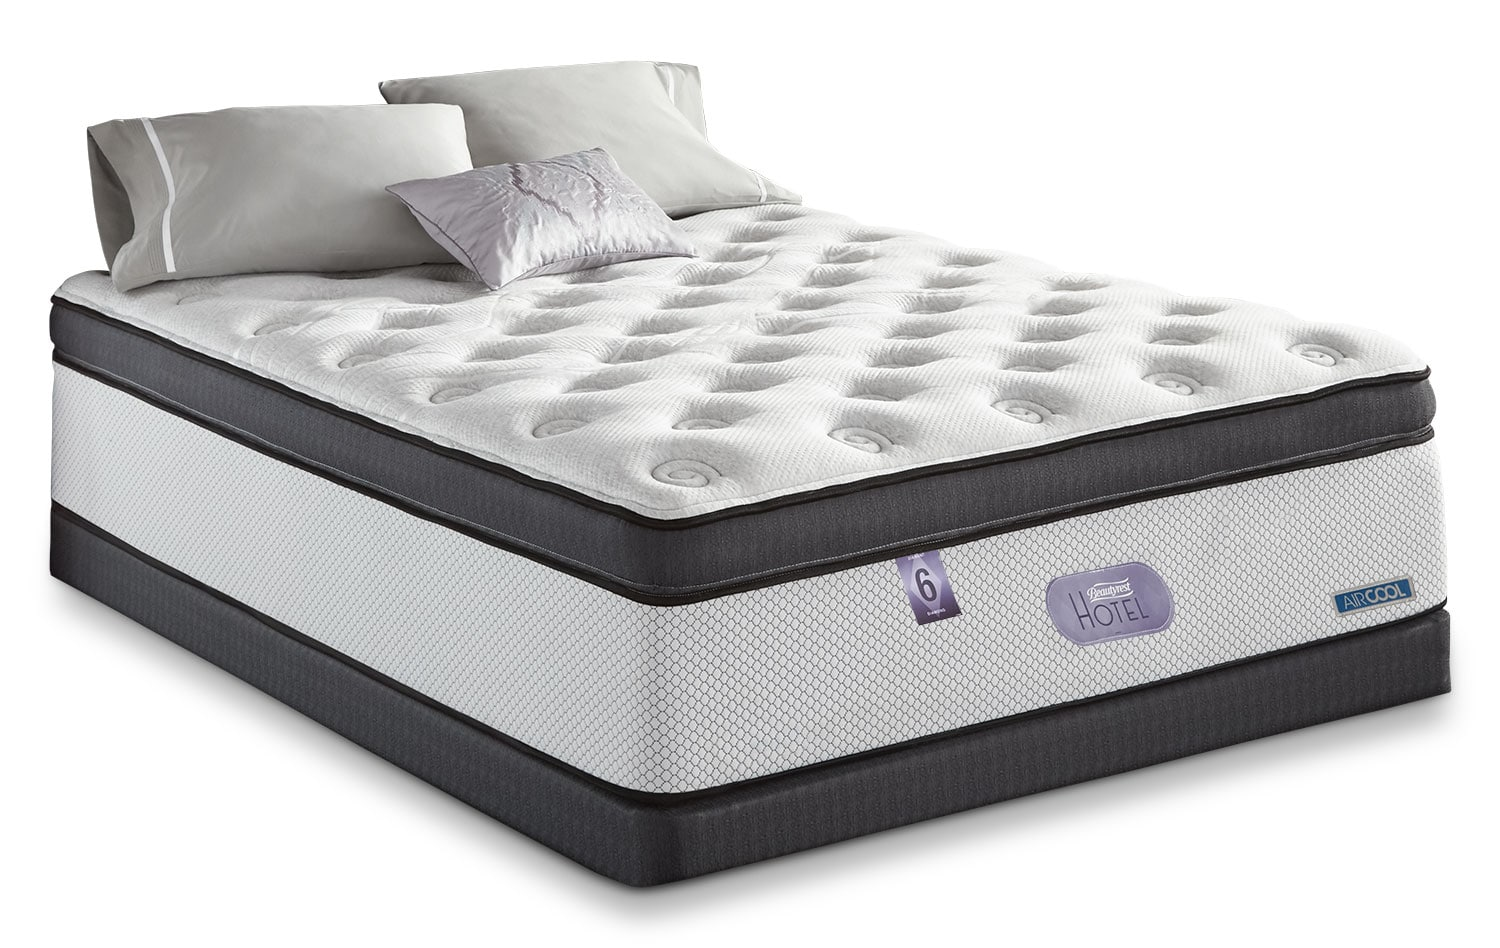 Mattresses and Bedding - Simmons Beautyrest® Hotel Diamond 6.0 Ultra Comfort Top Plush Full Mattress Set